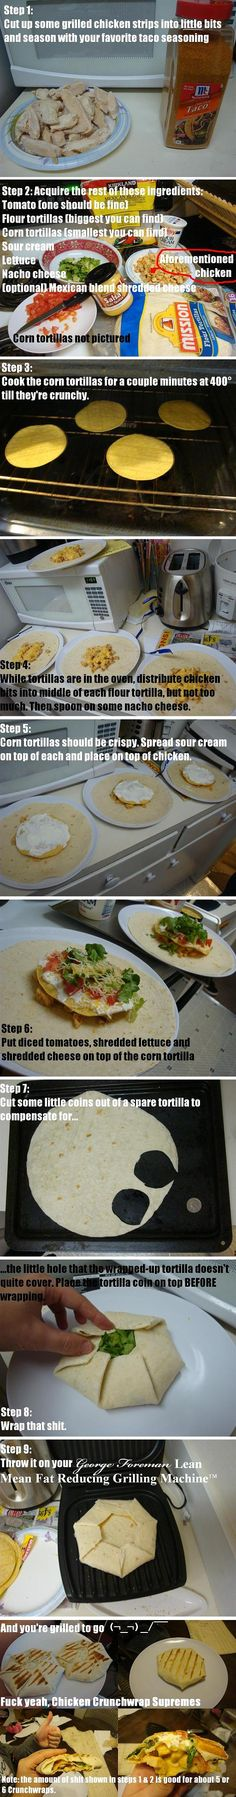 Homemade Crunch Wrap Supremes (these are my kind of directions as well!!)